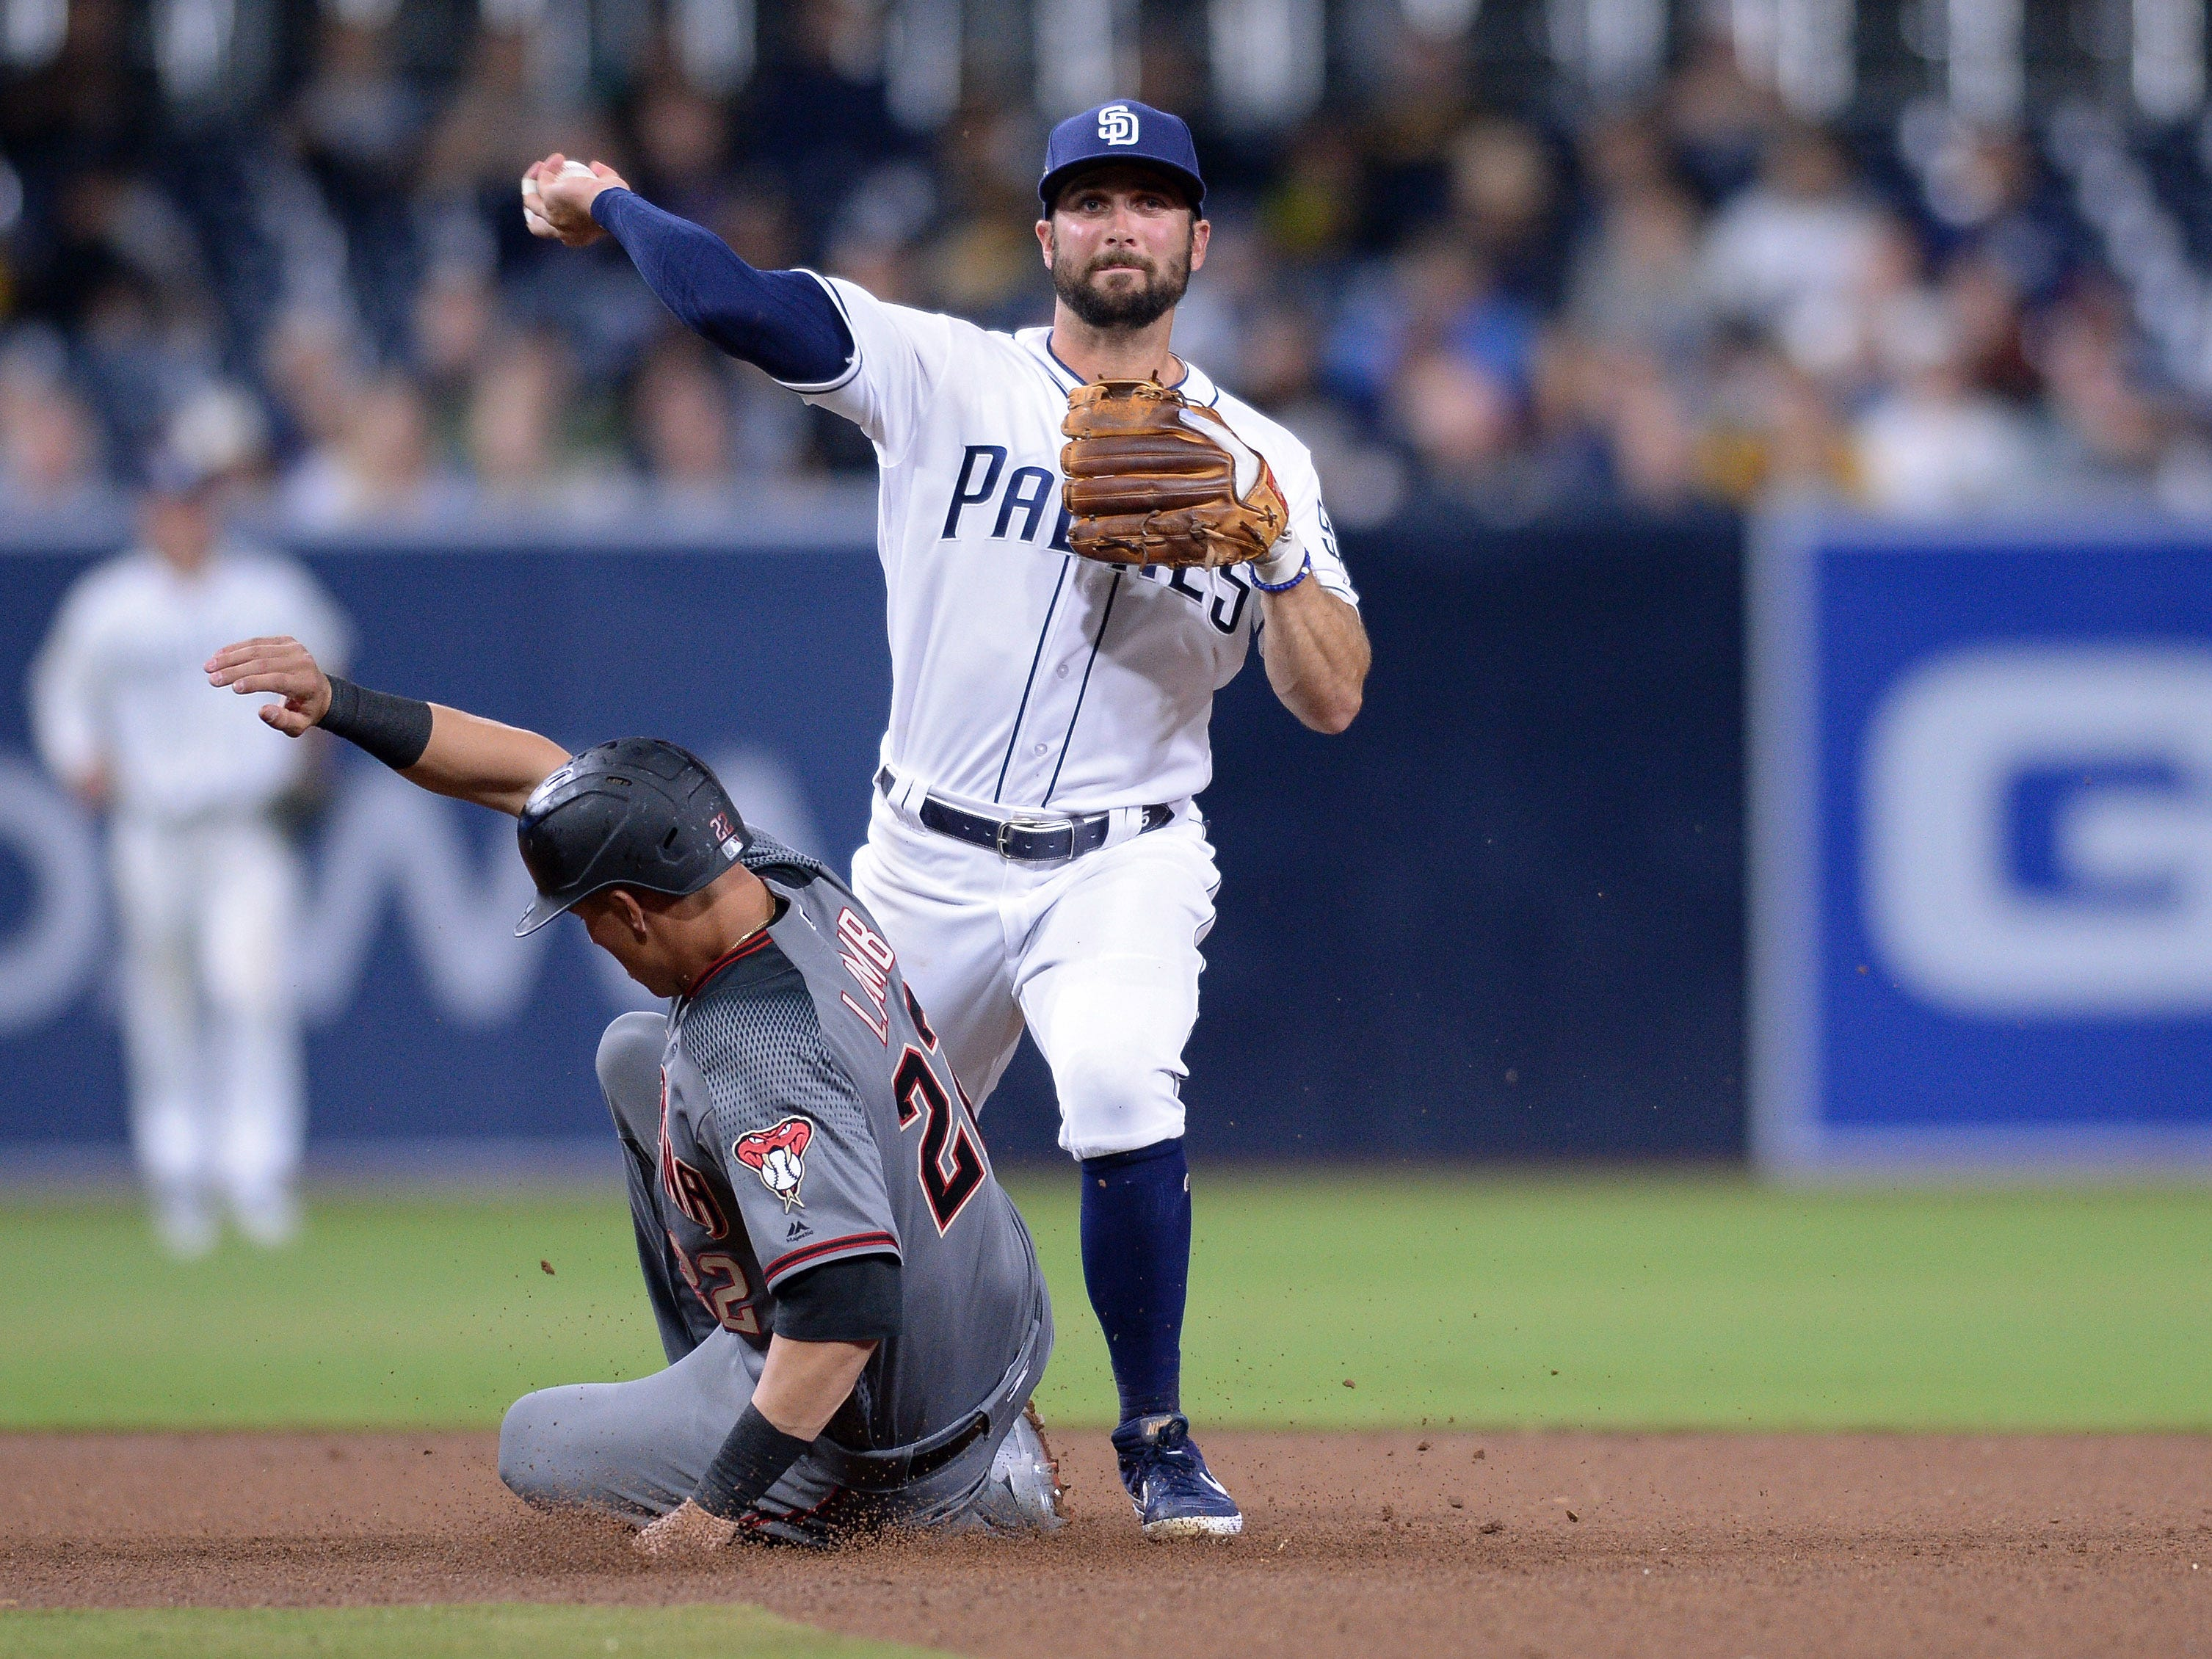 Apr 1, 2019: San Diego Padres third baseman Greg Garcia (5) forces out Arizona Diamondbacks third baseman Jake Lamb (22) at second base during the seventh inning at Petco Park.